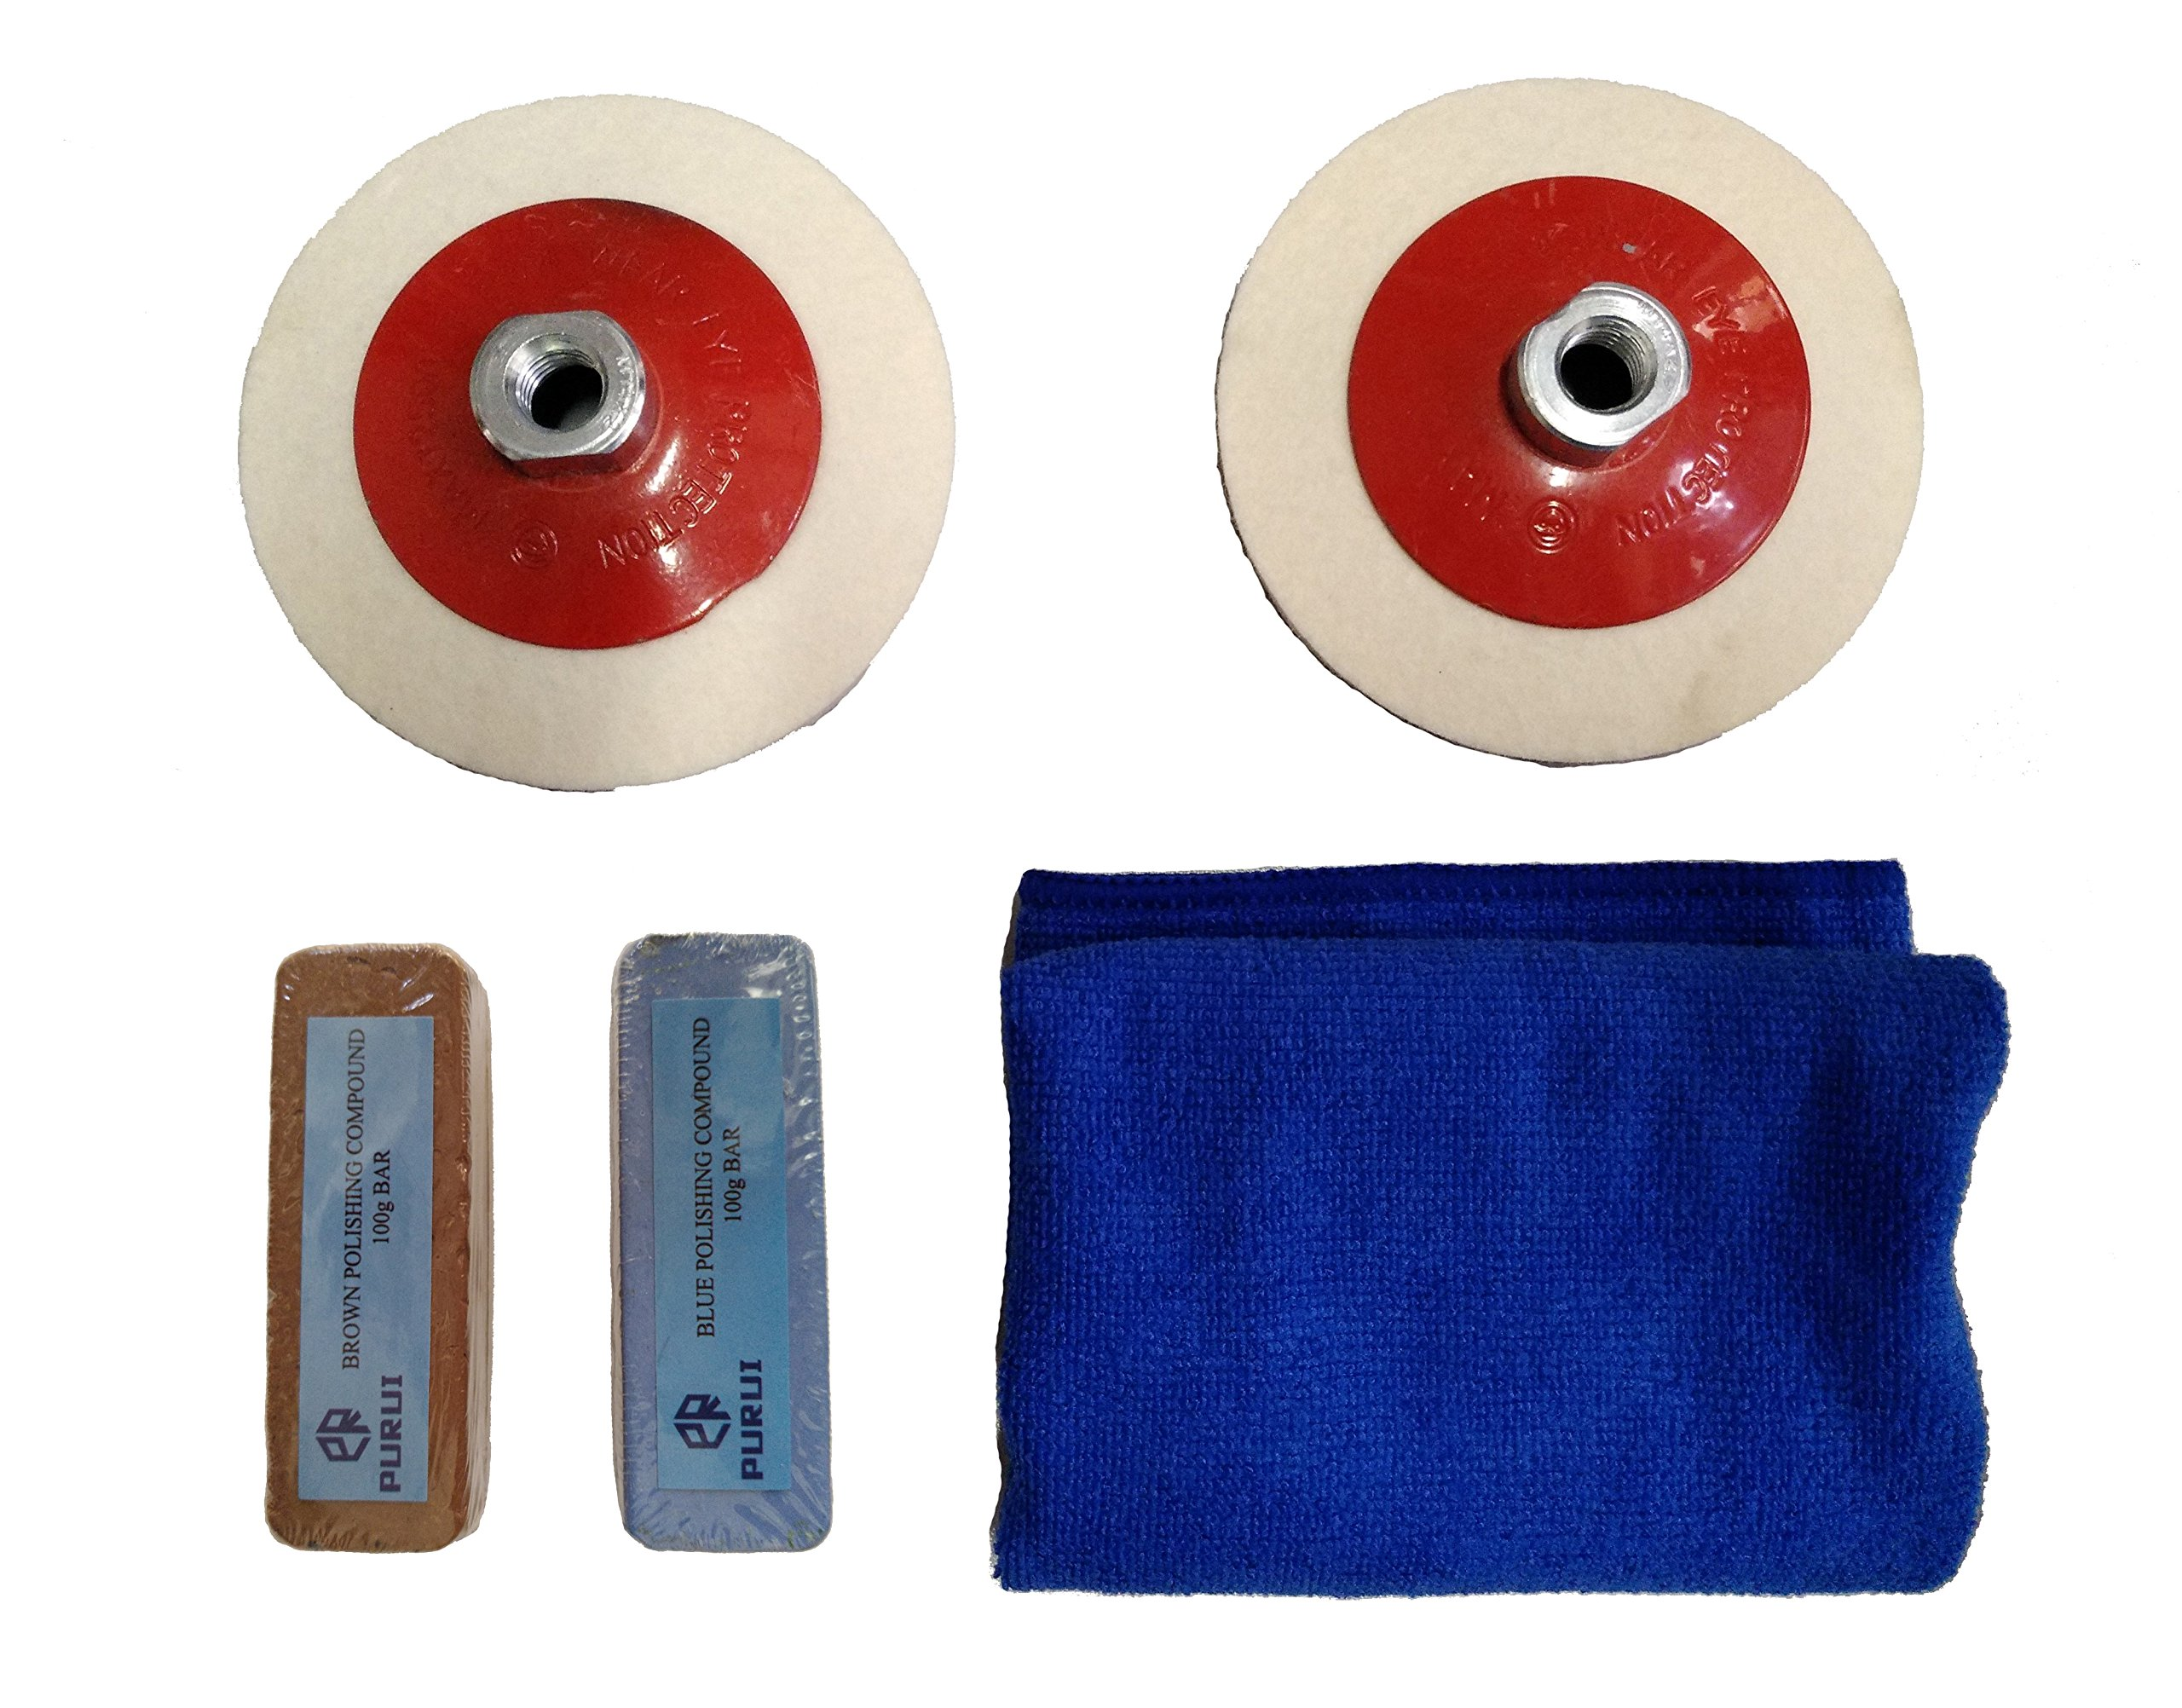 PURUI 5PC 115MM Bevelled Felt Buffing Wheel Kit With M14 x 2 Thread for Angle Grinder(For Aluminum Brass Bronze Polishing)